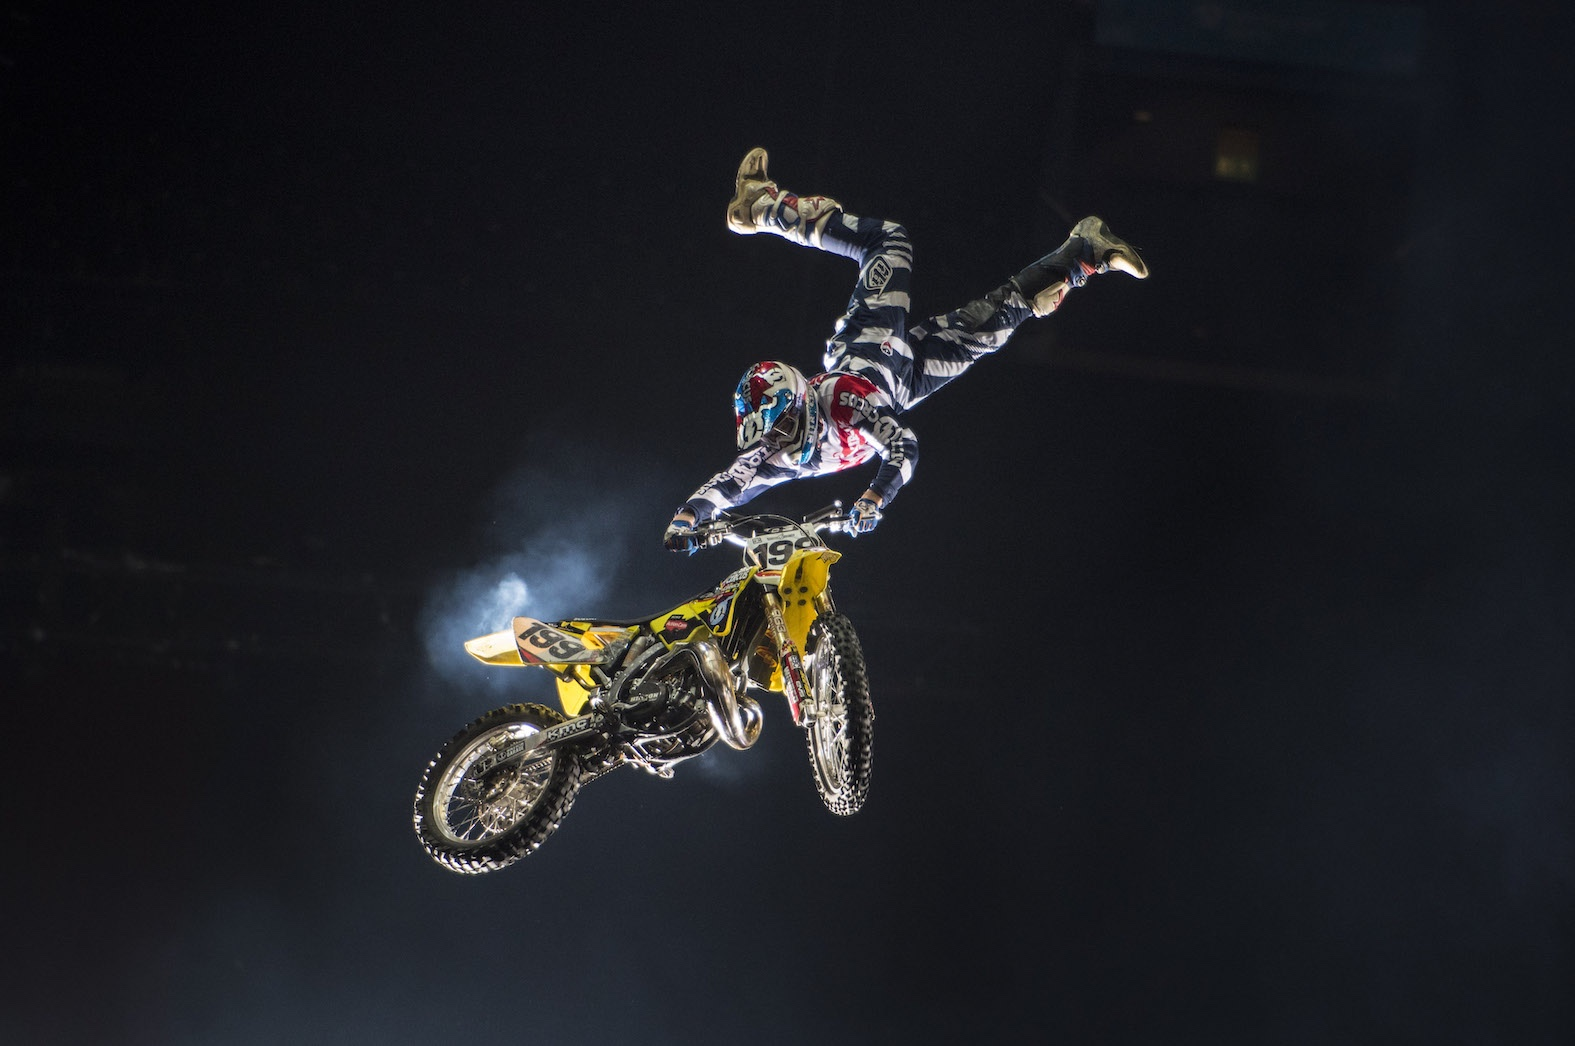 Travis Pastrana's Nitro Circus Live is coming to South Africa